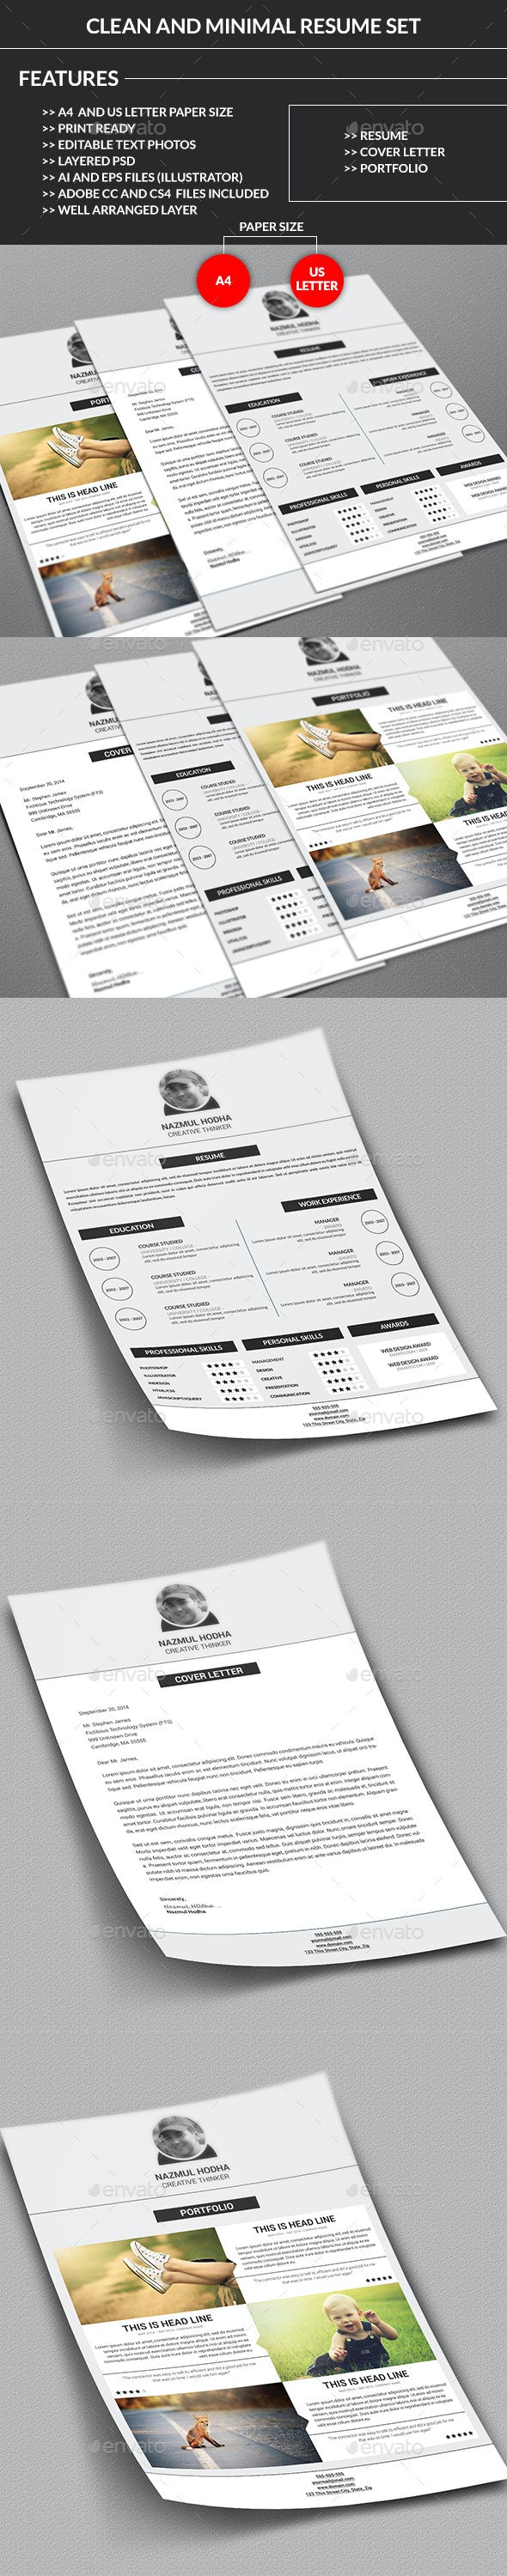 Clean and Minimal Resume Set - Resumes Stationery